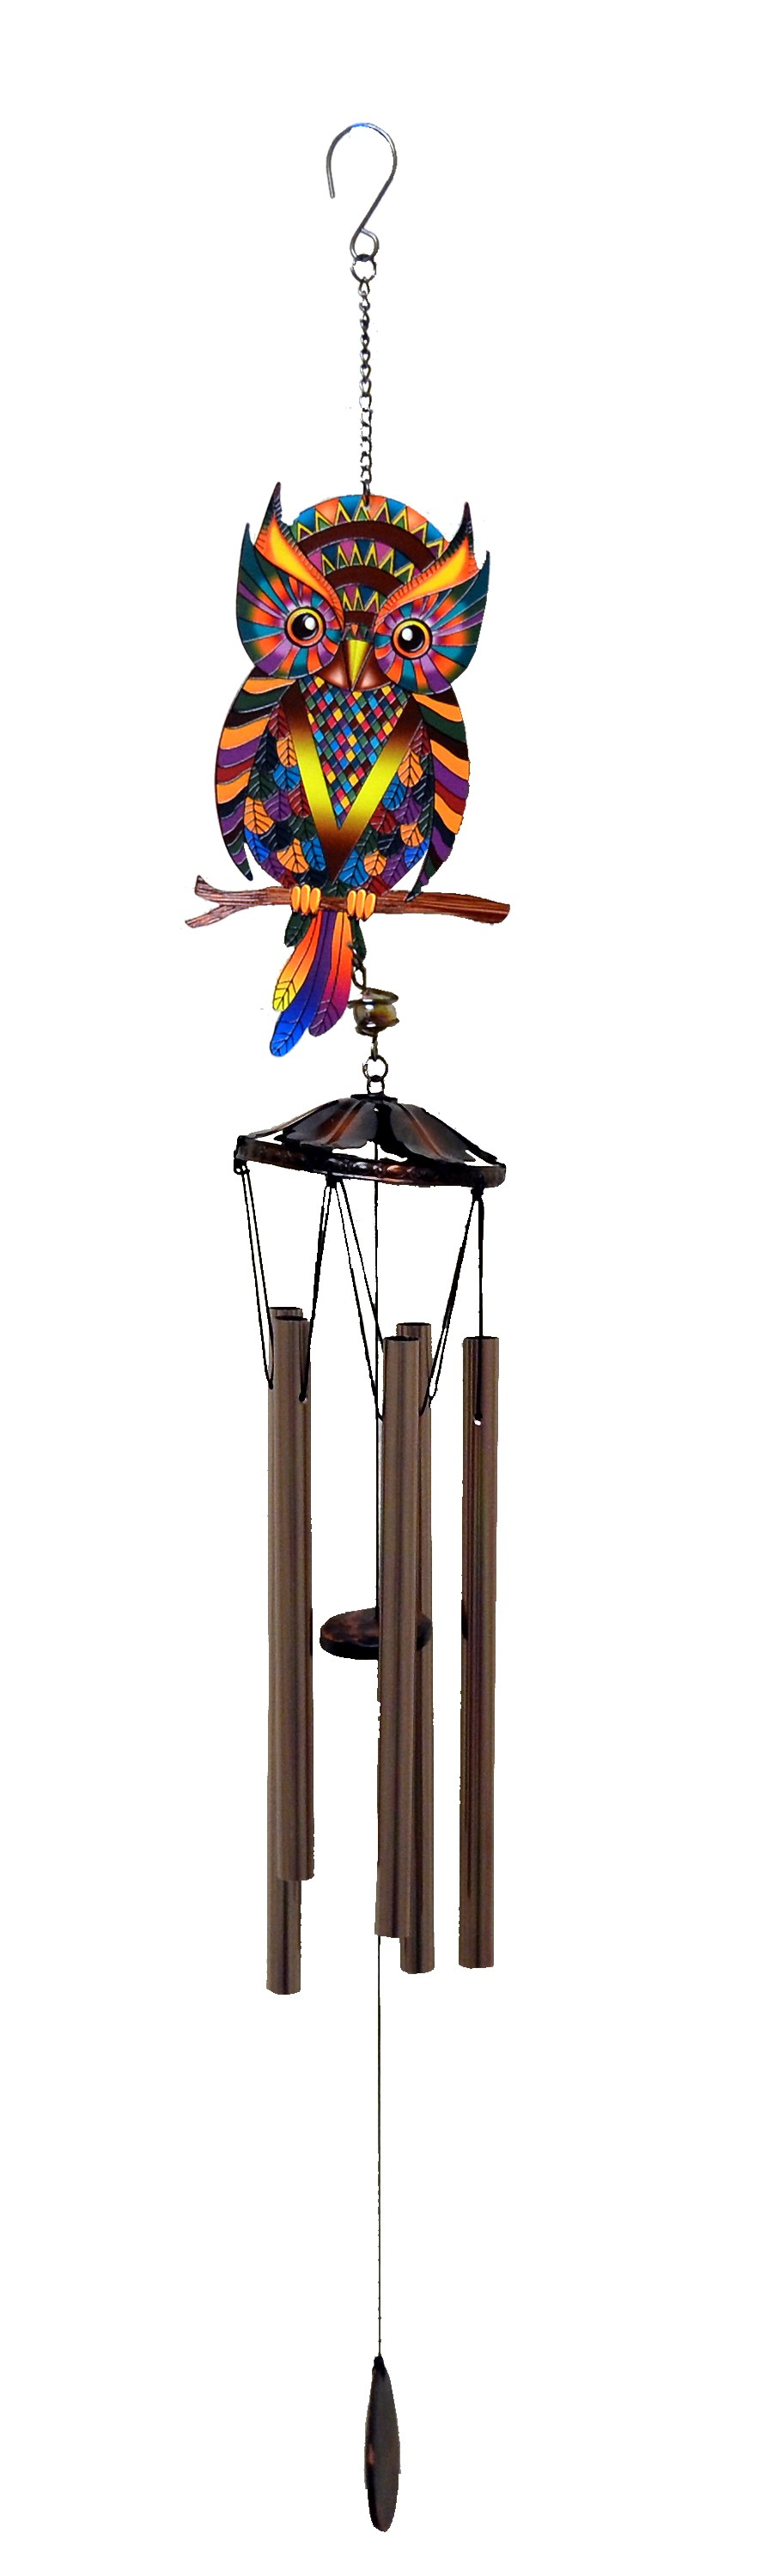 OWL BRAZILIAN STYLE PRINTED WIND CHIME